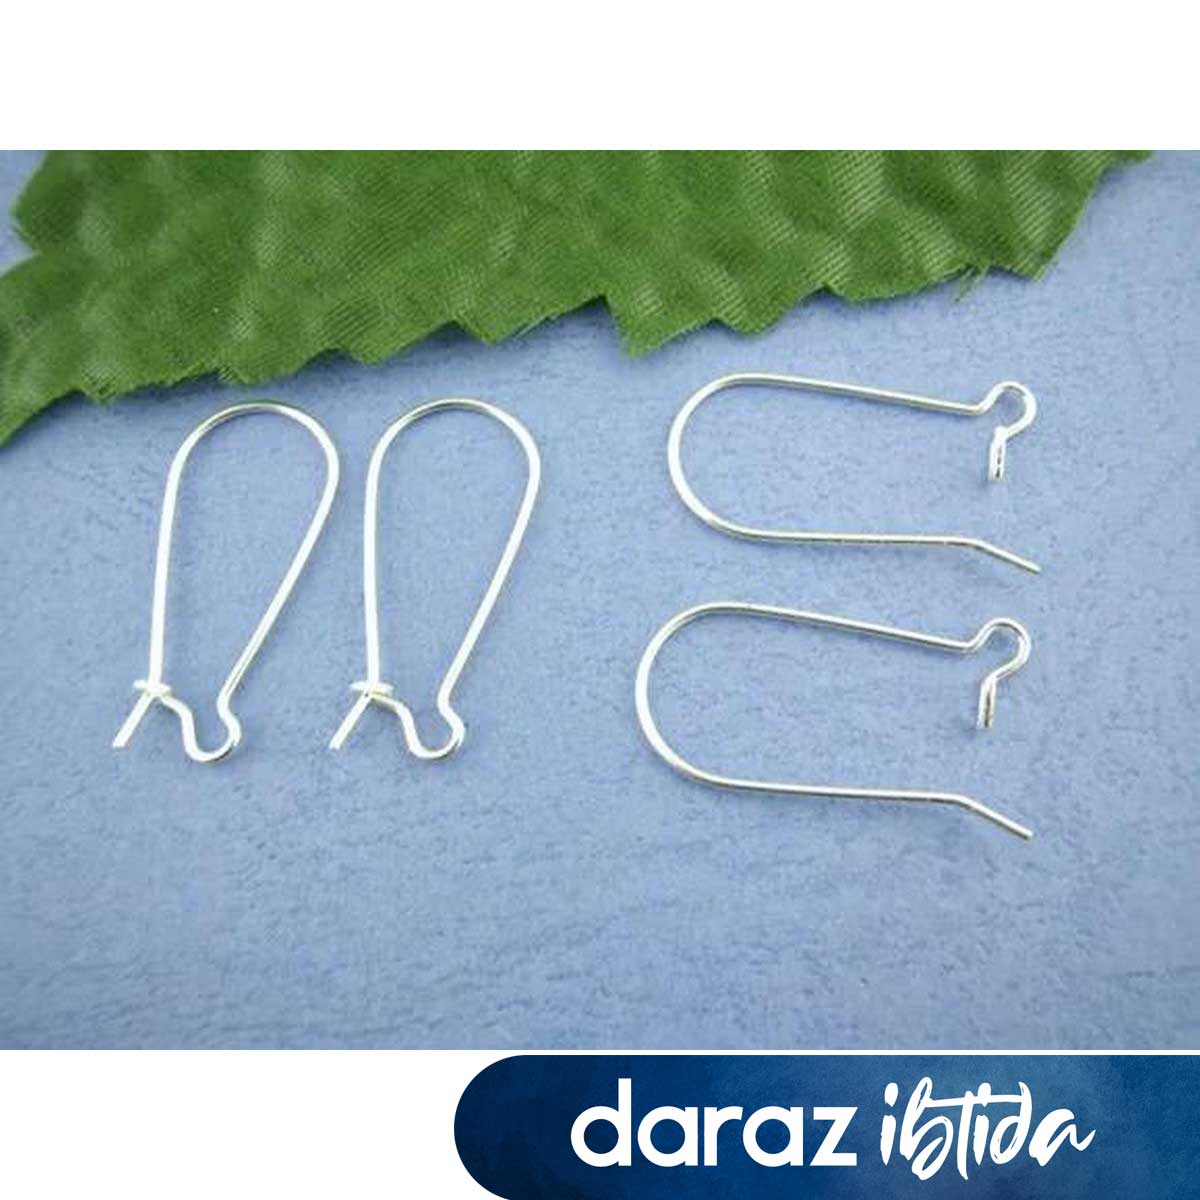 Alloy Earring Components Earring Base jewelry Findings Making Silver Plated 11mm( 3/8 ) x 24mm(1 ), 10 Pairs